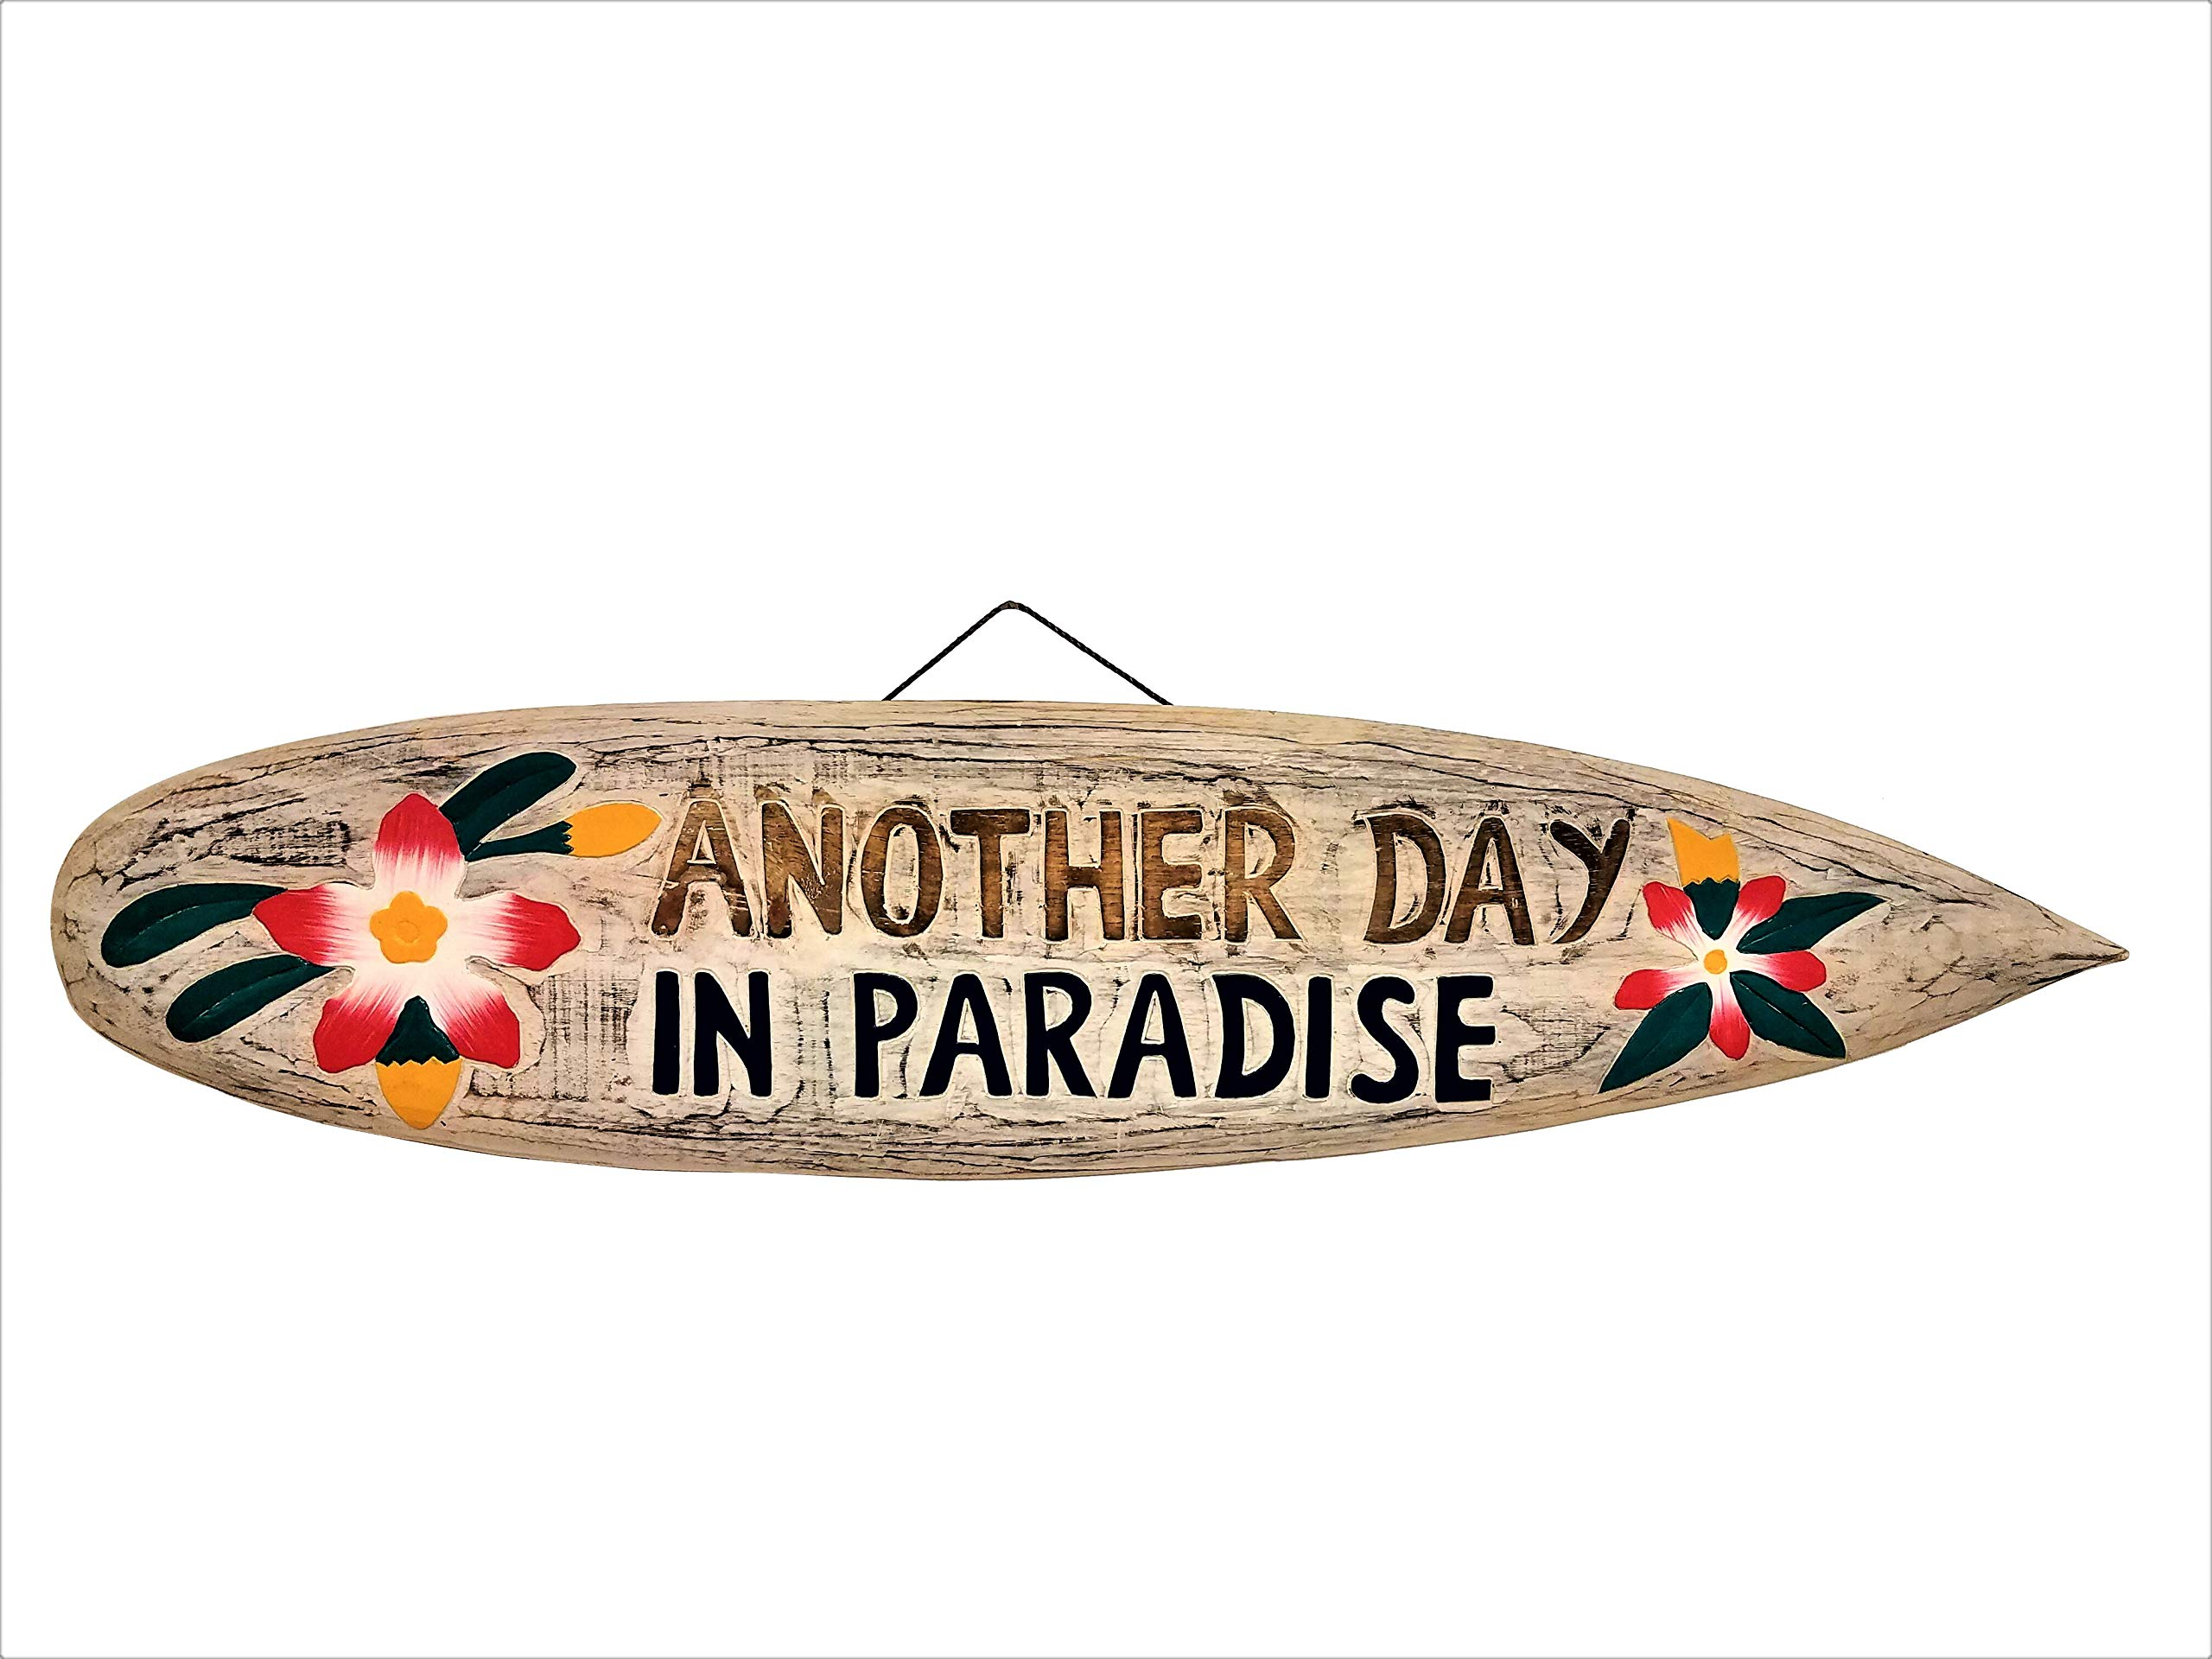 All Seas Imports 39'' Handcarved and Painted Distressed Style Wood Another Day in Paradise with Flowers Surfboard